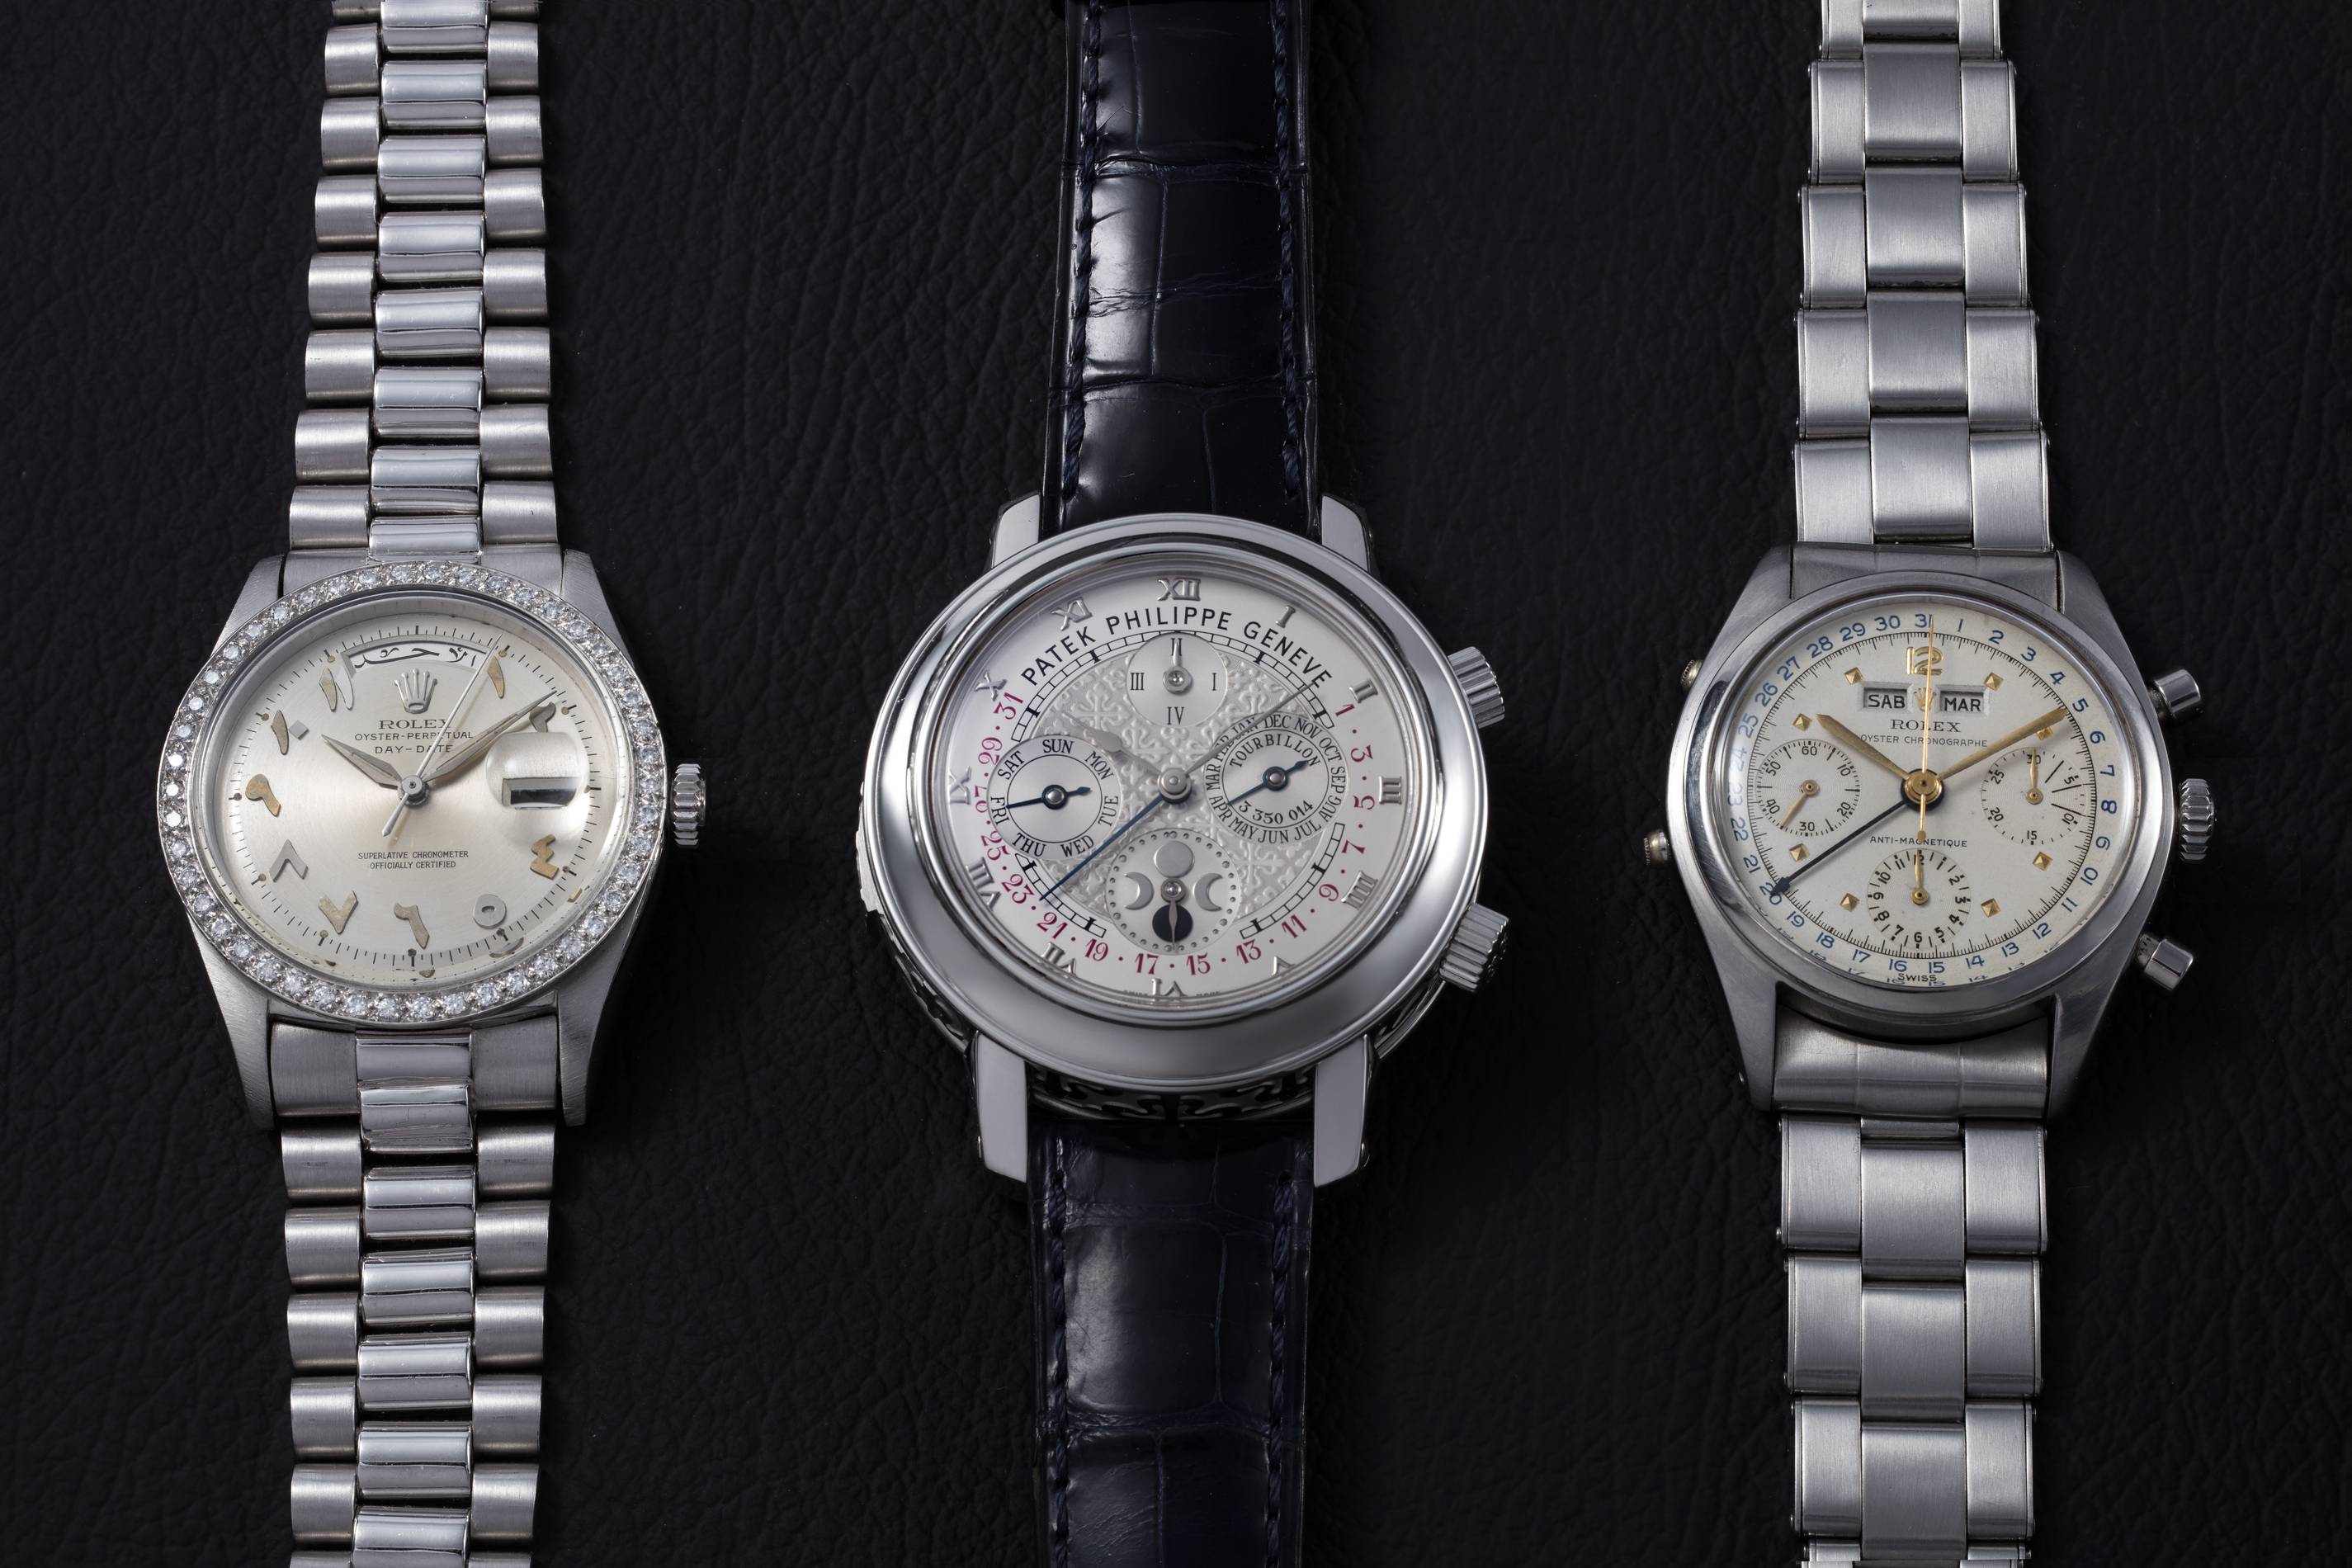 Christie's watch auctions are online in 2021